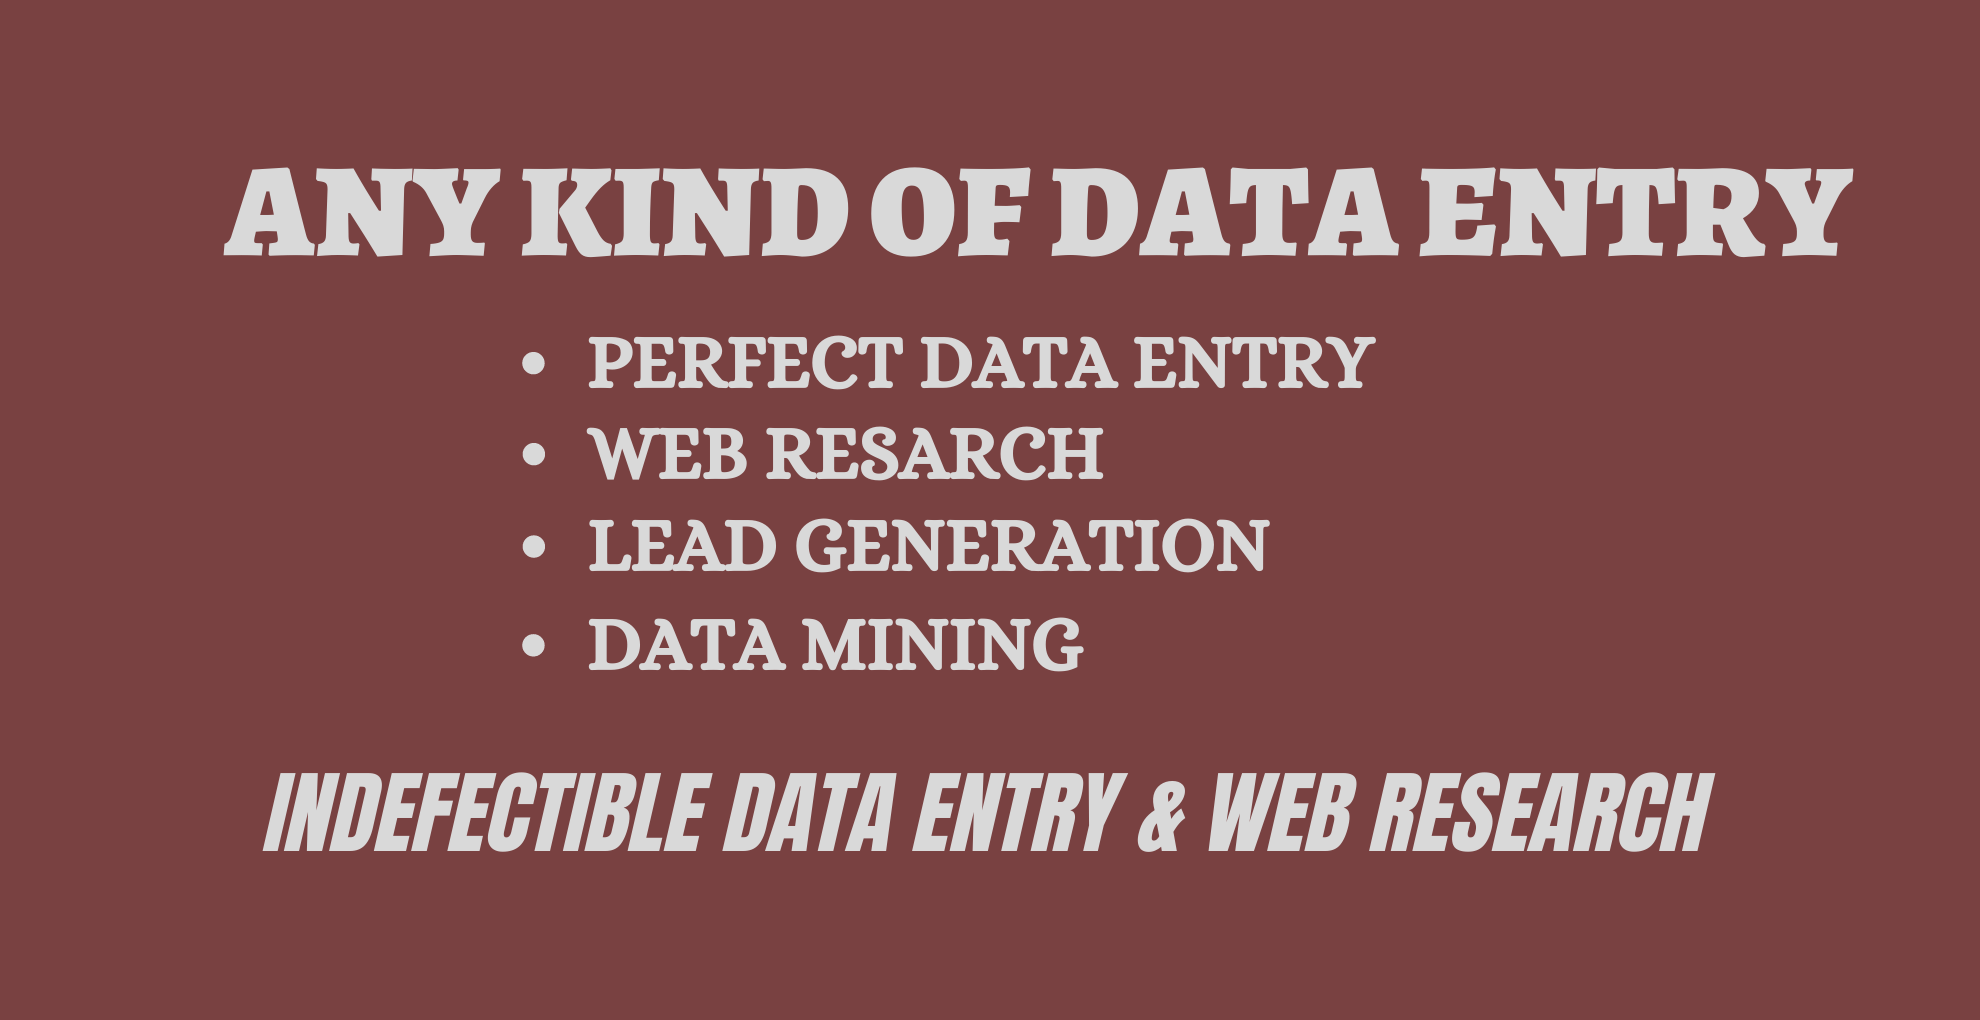 I will do indefectible data entry and web research